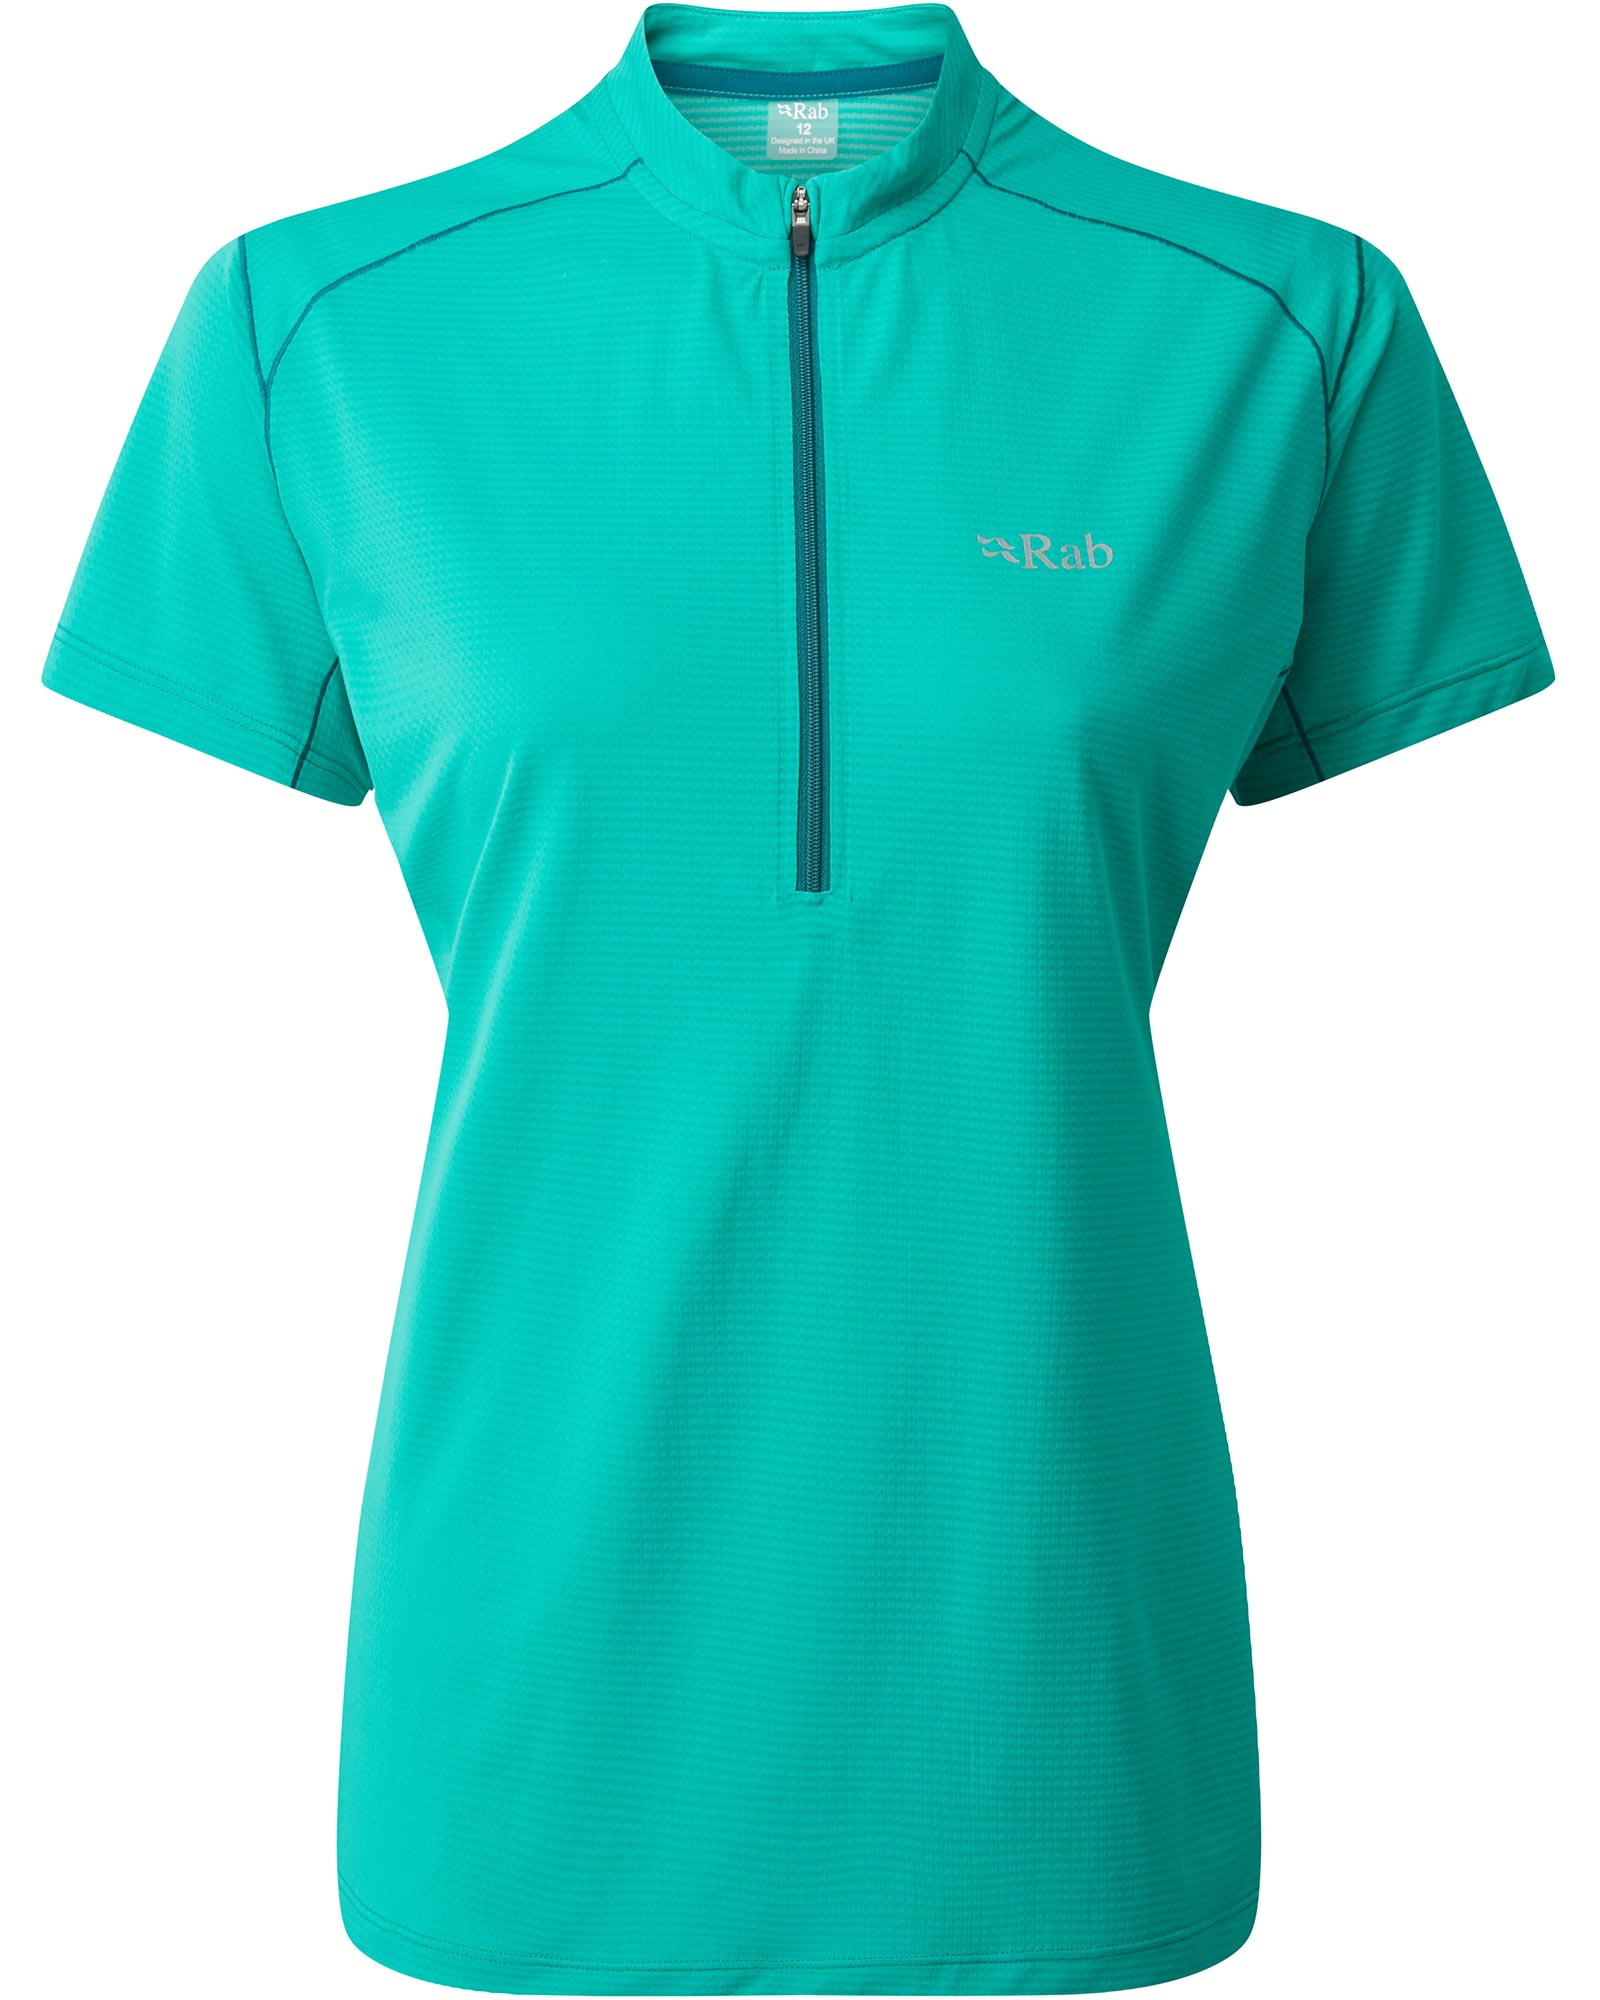 Rab Women's Sonic Short Sleeve Zip Neck Peacock Green 0